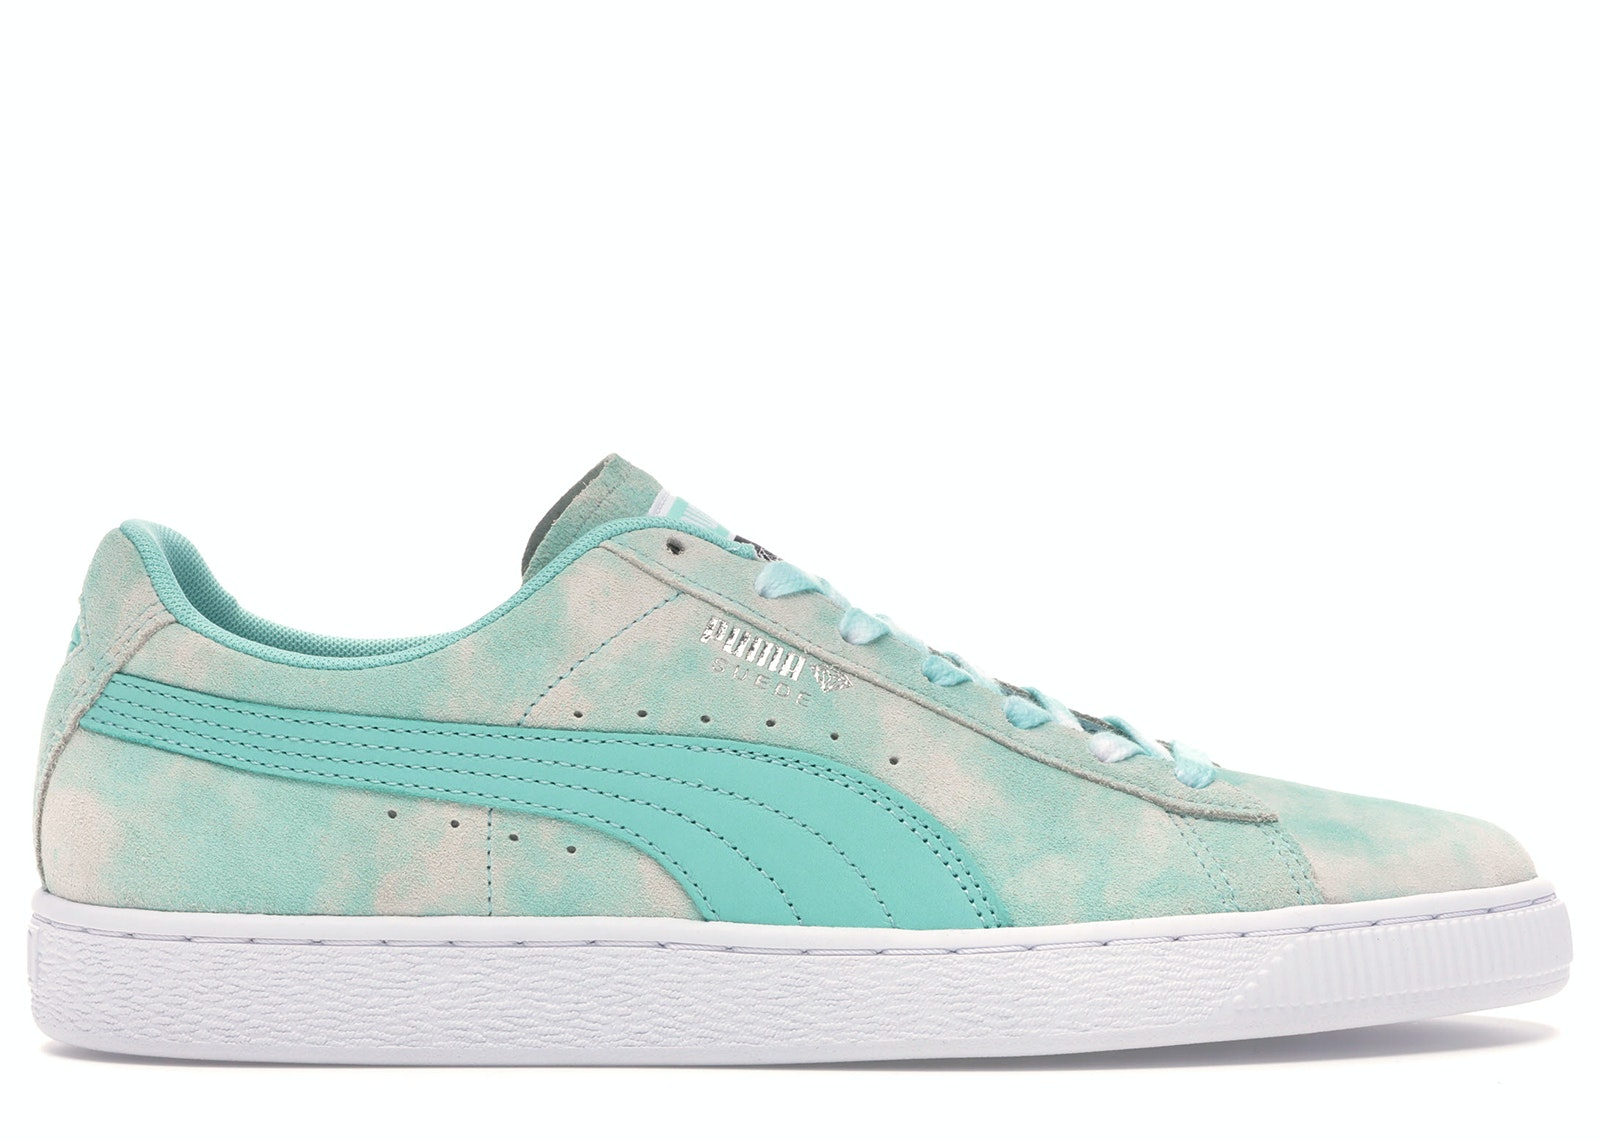 Puma Suede Dye Diamond Supply